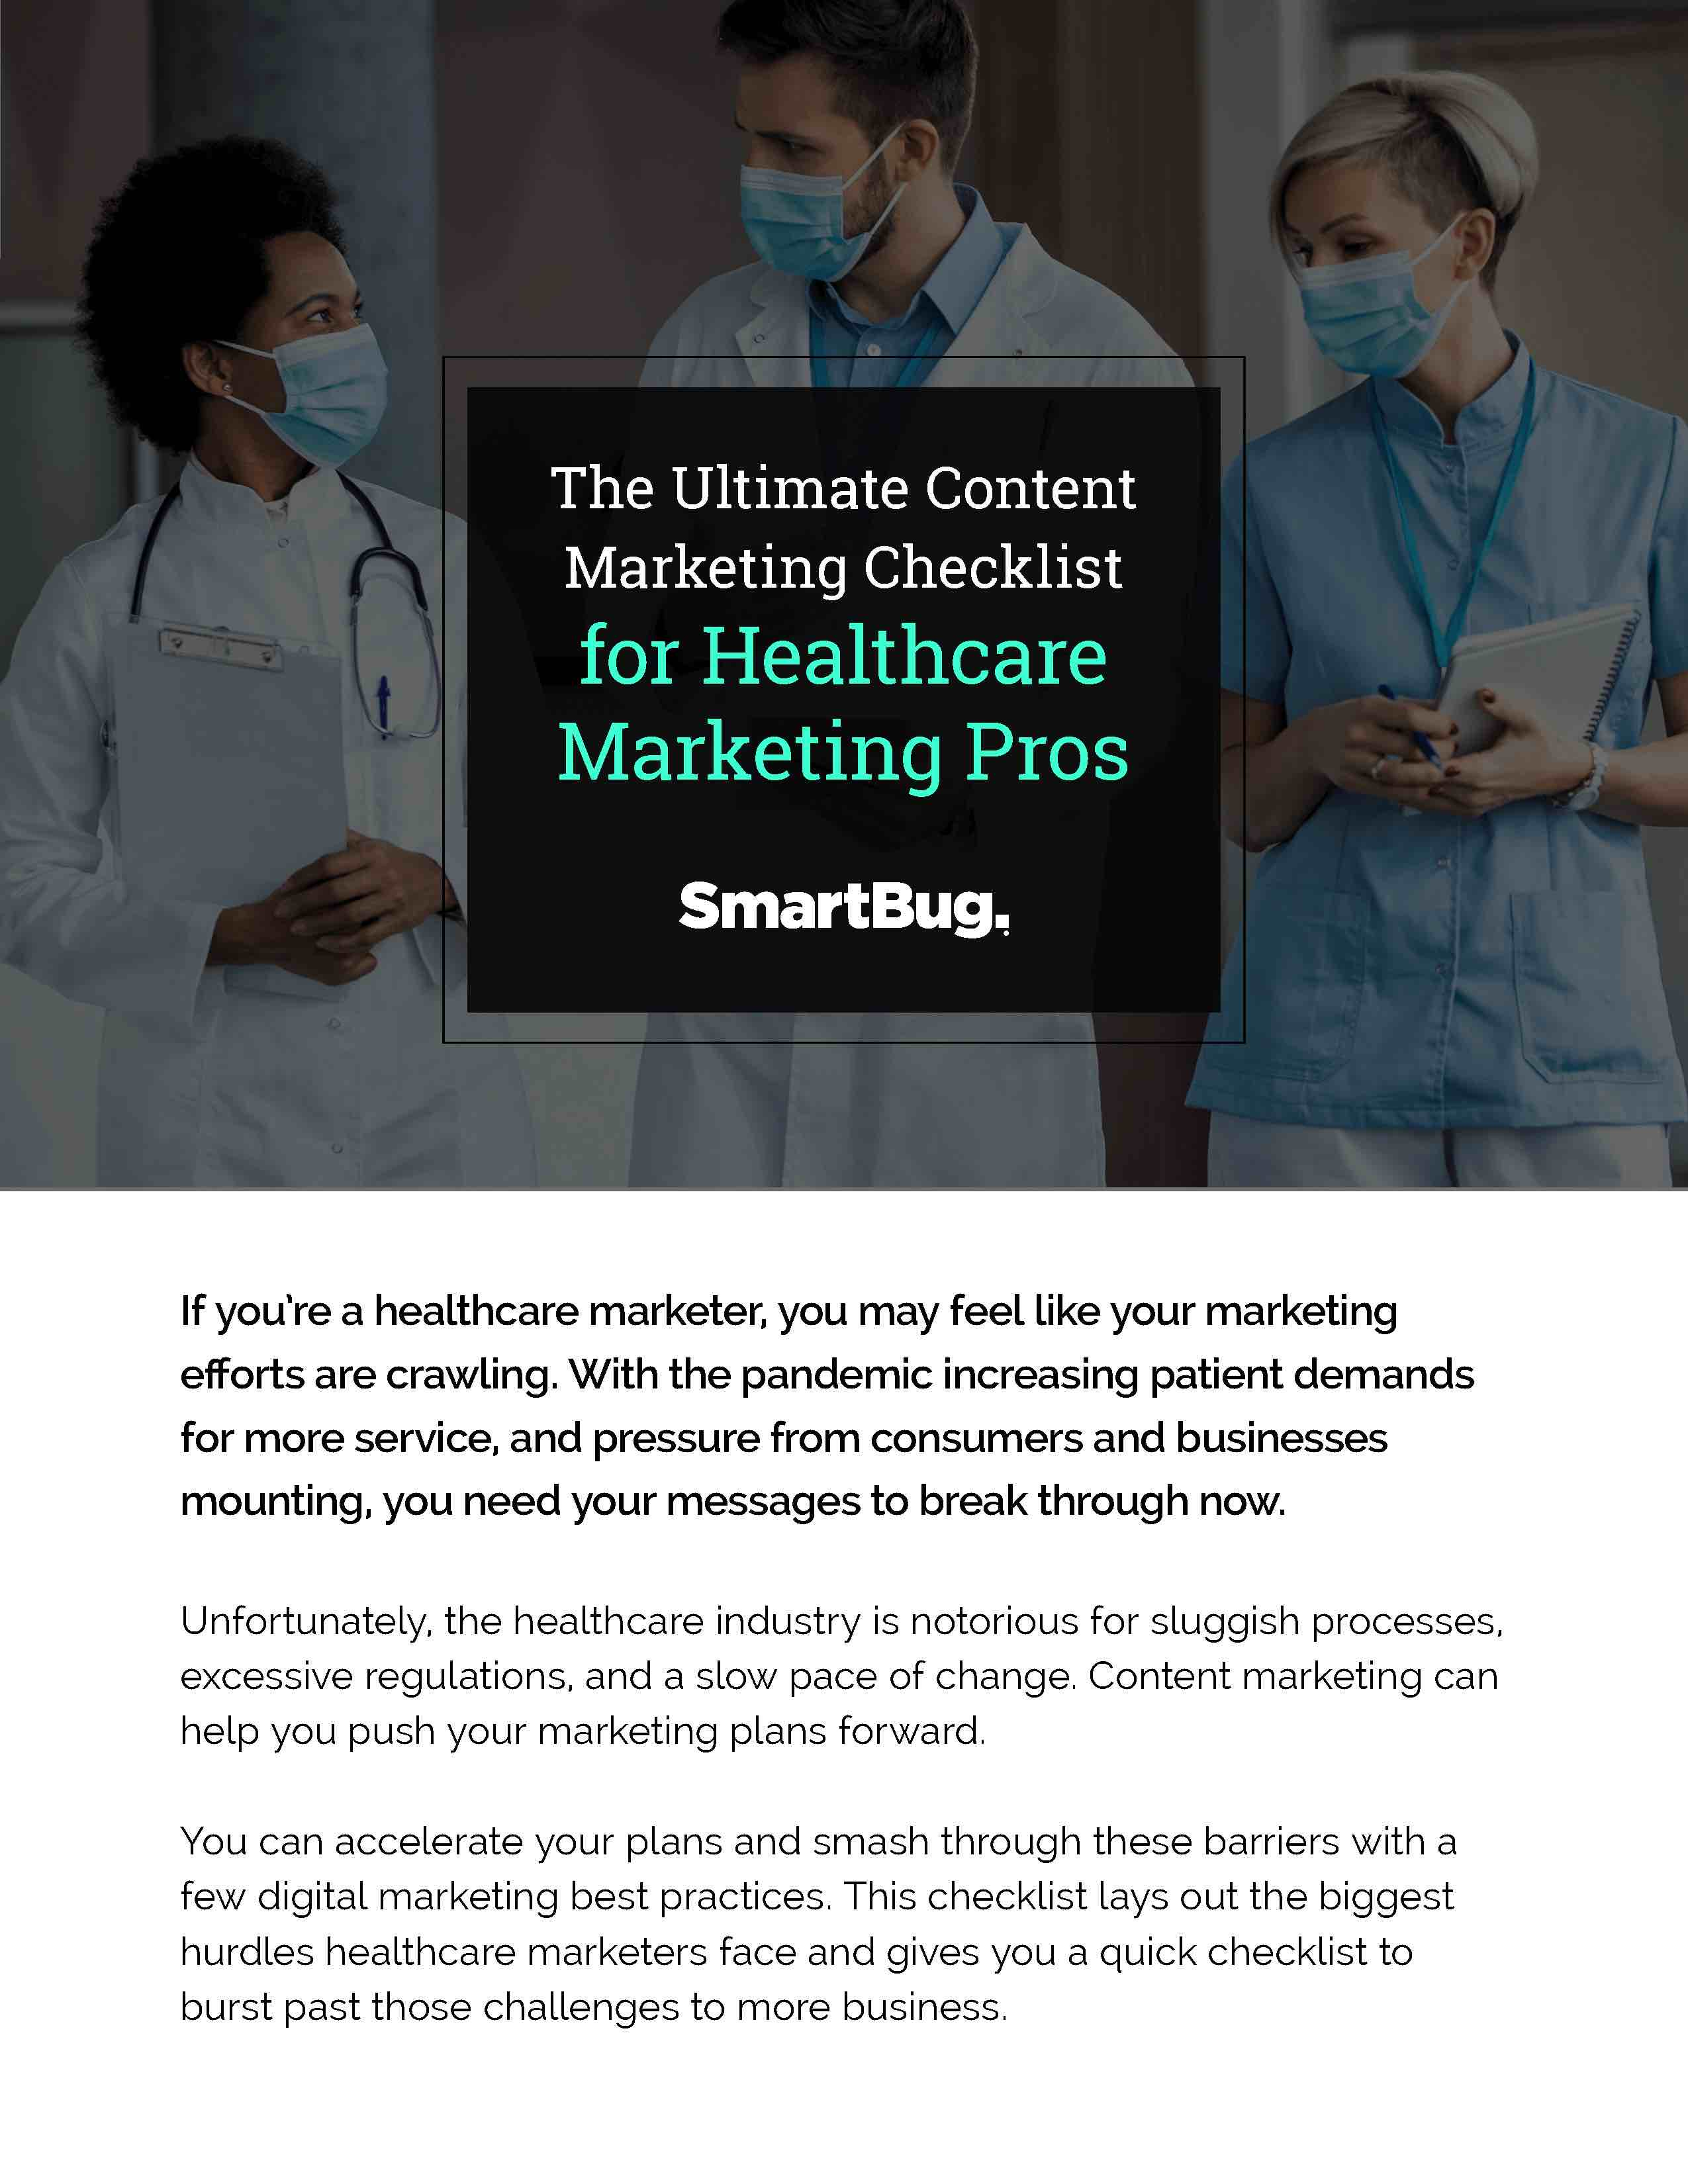 The Ultimate Content Marketing Checklist for Healthcare Marketing_Page_1